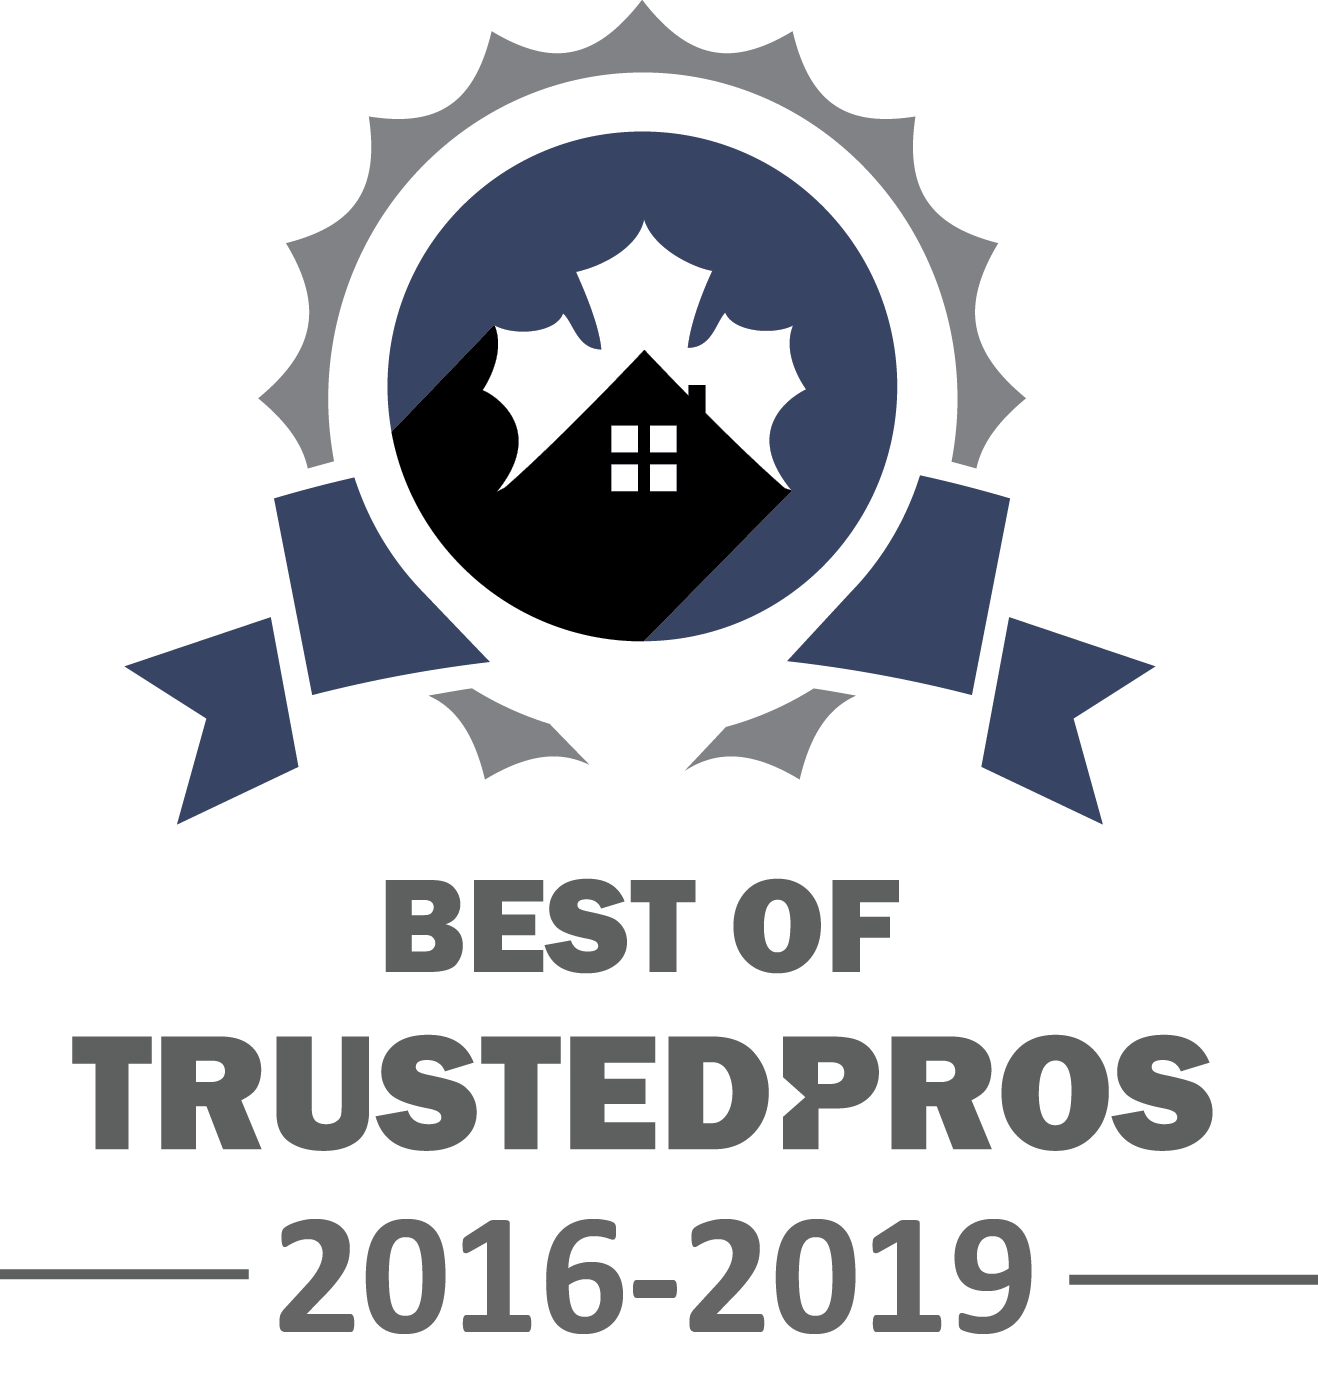 Best of TrustedPros 2016-2019